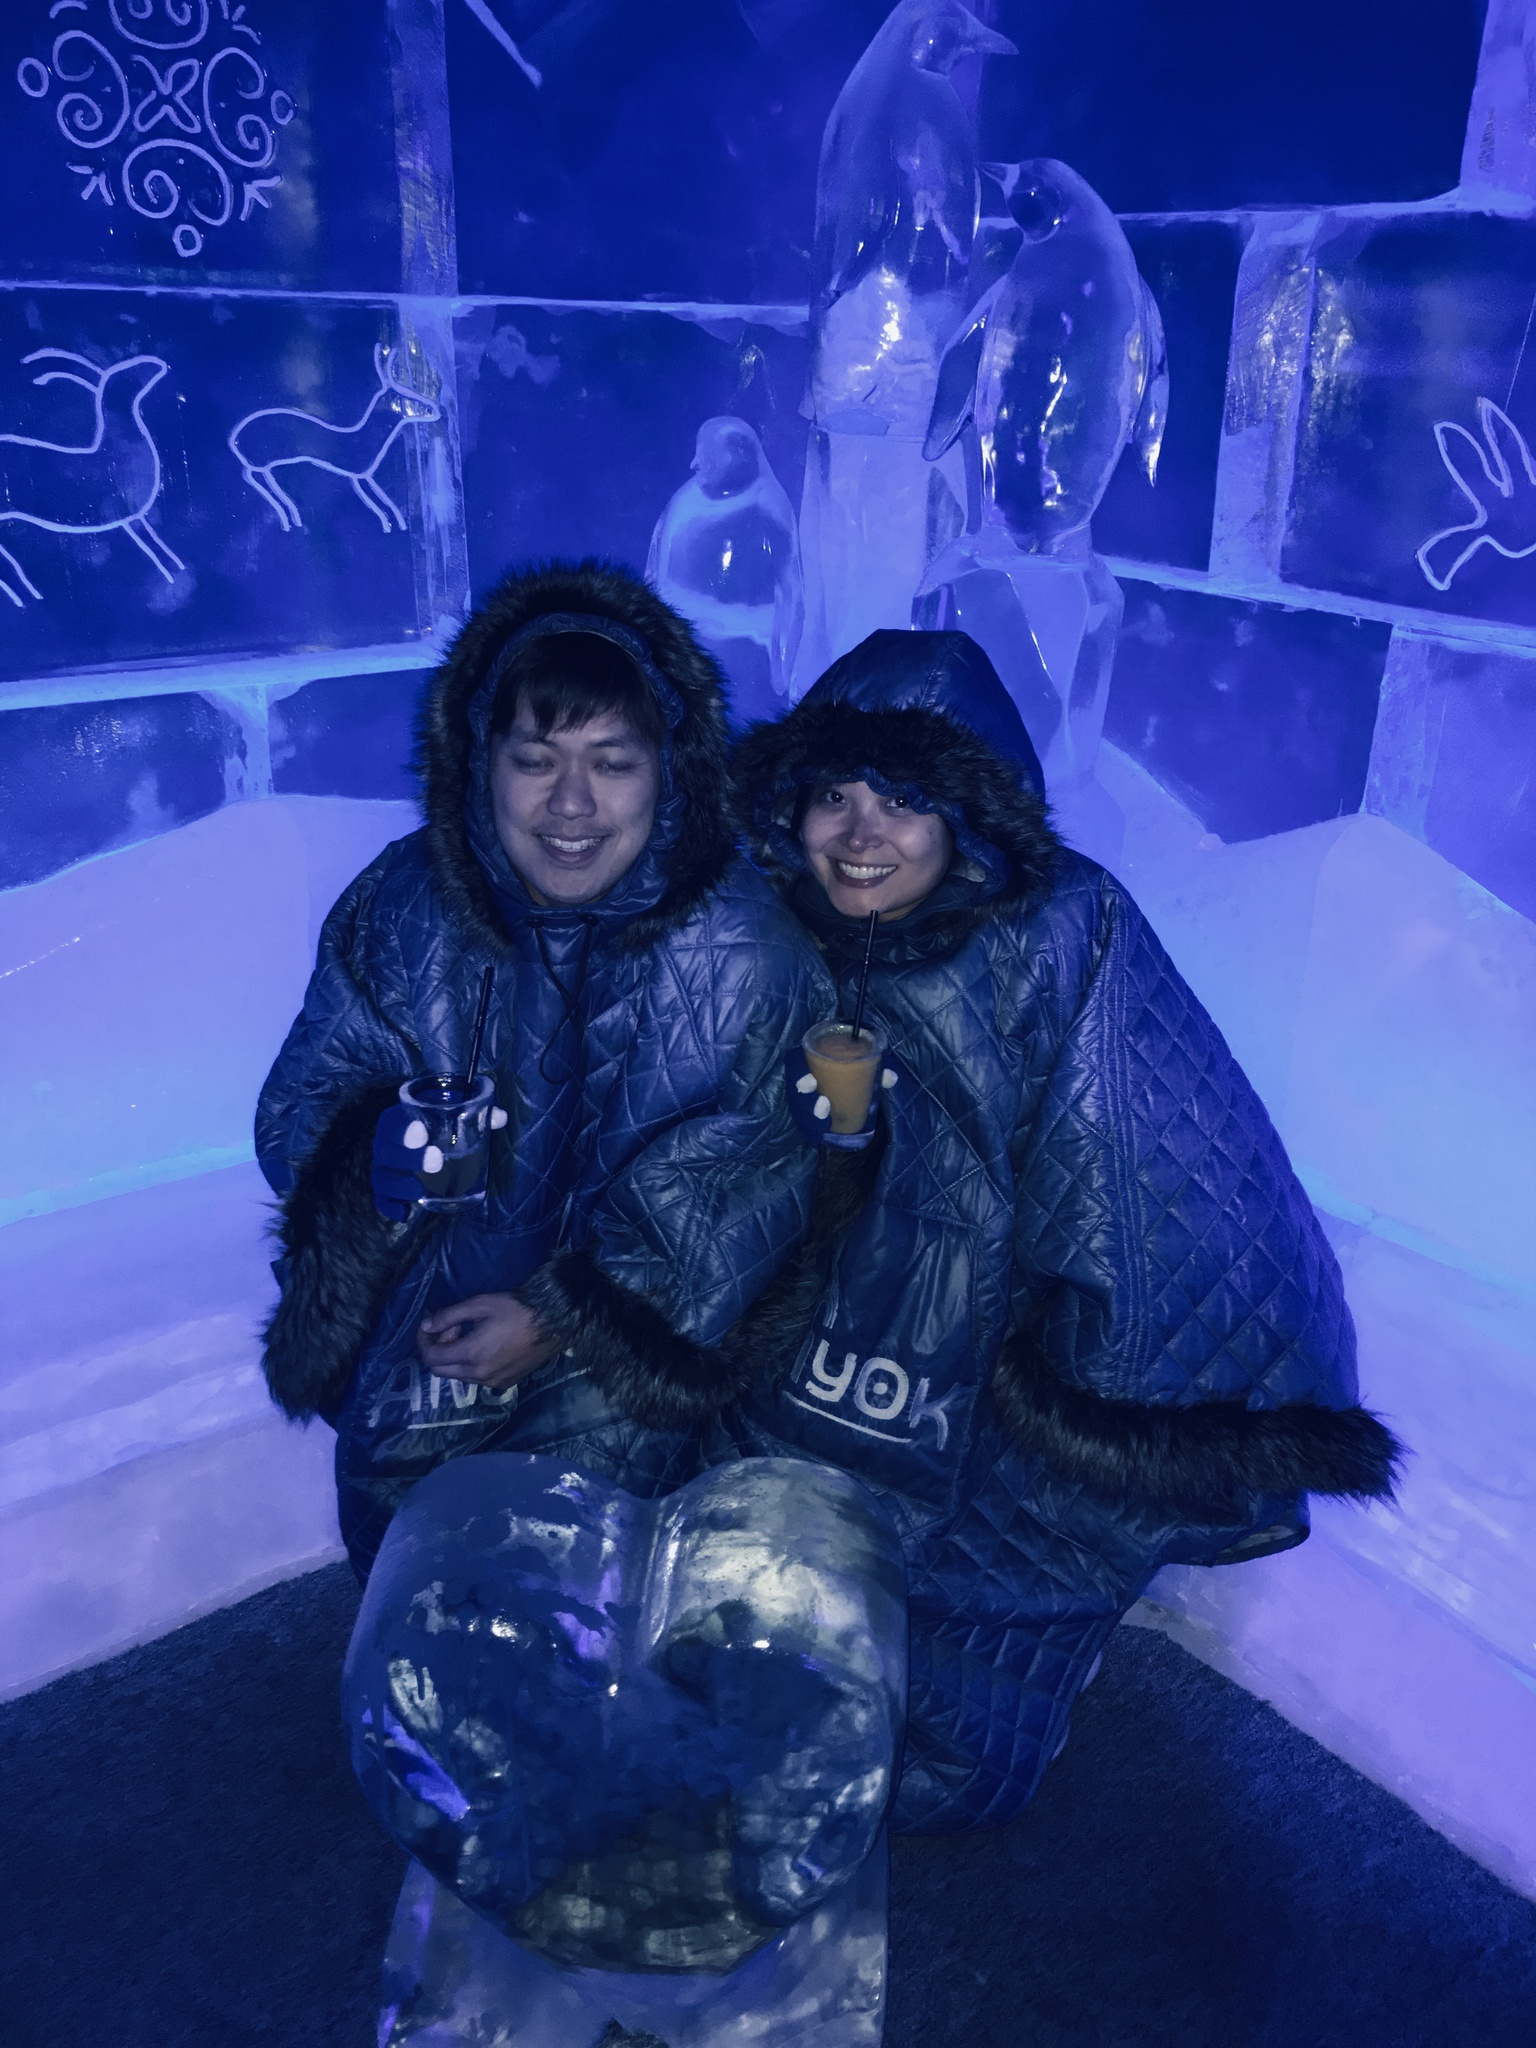 Chilling in an ice bar in Berlin